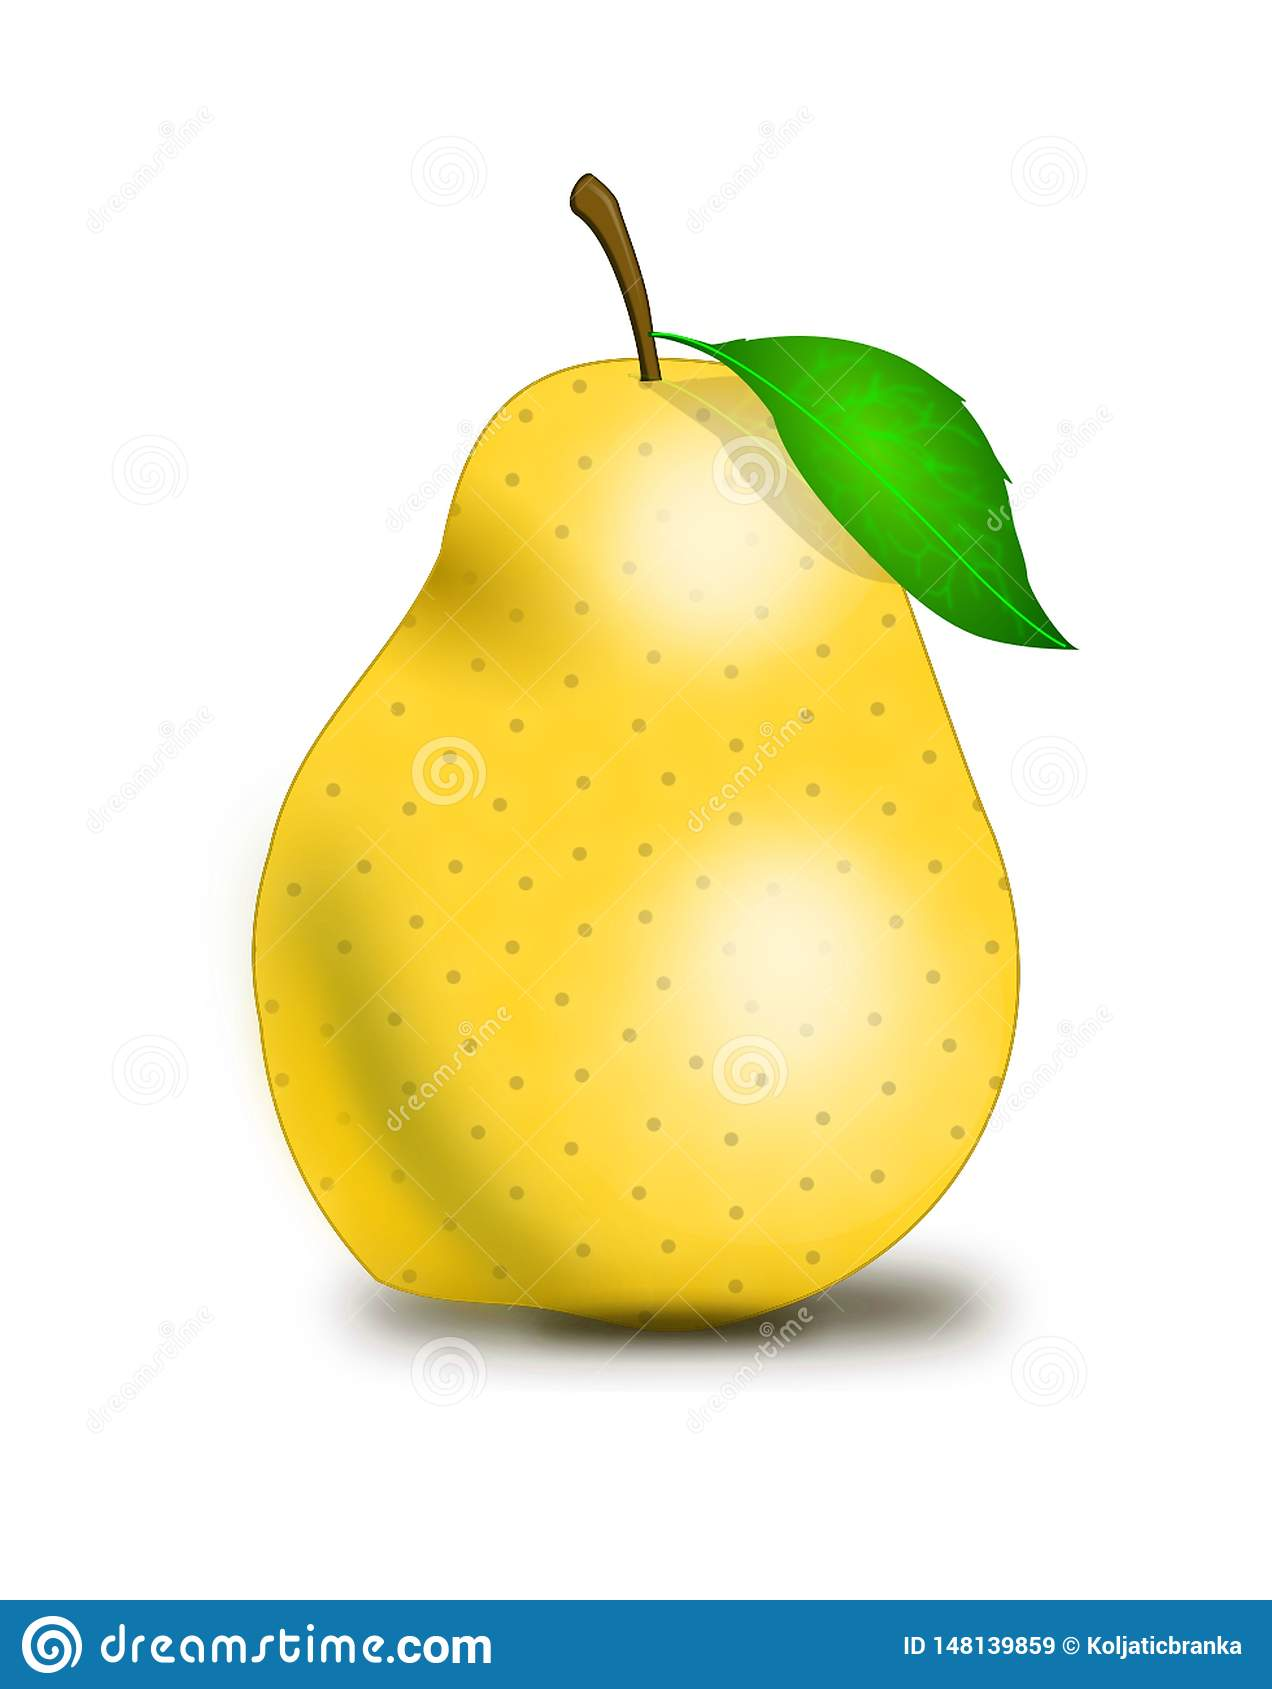 Yellow pear on a white background with a shadow.